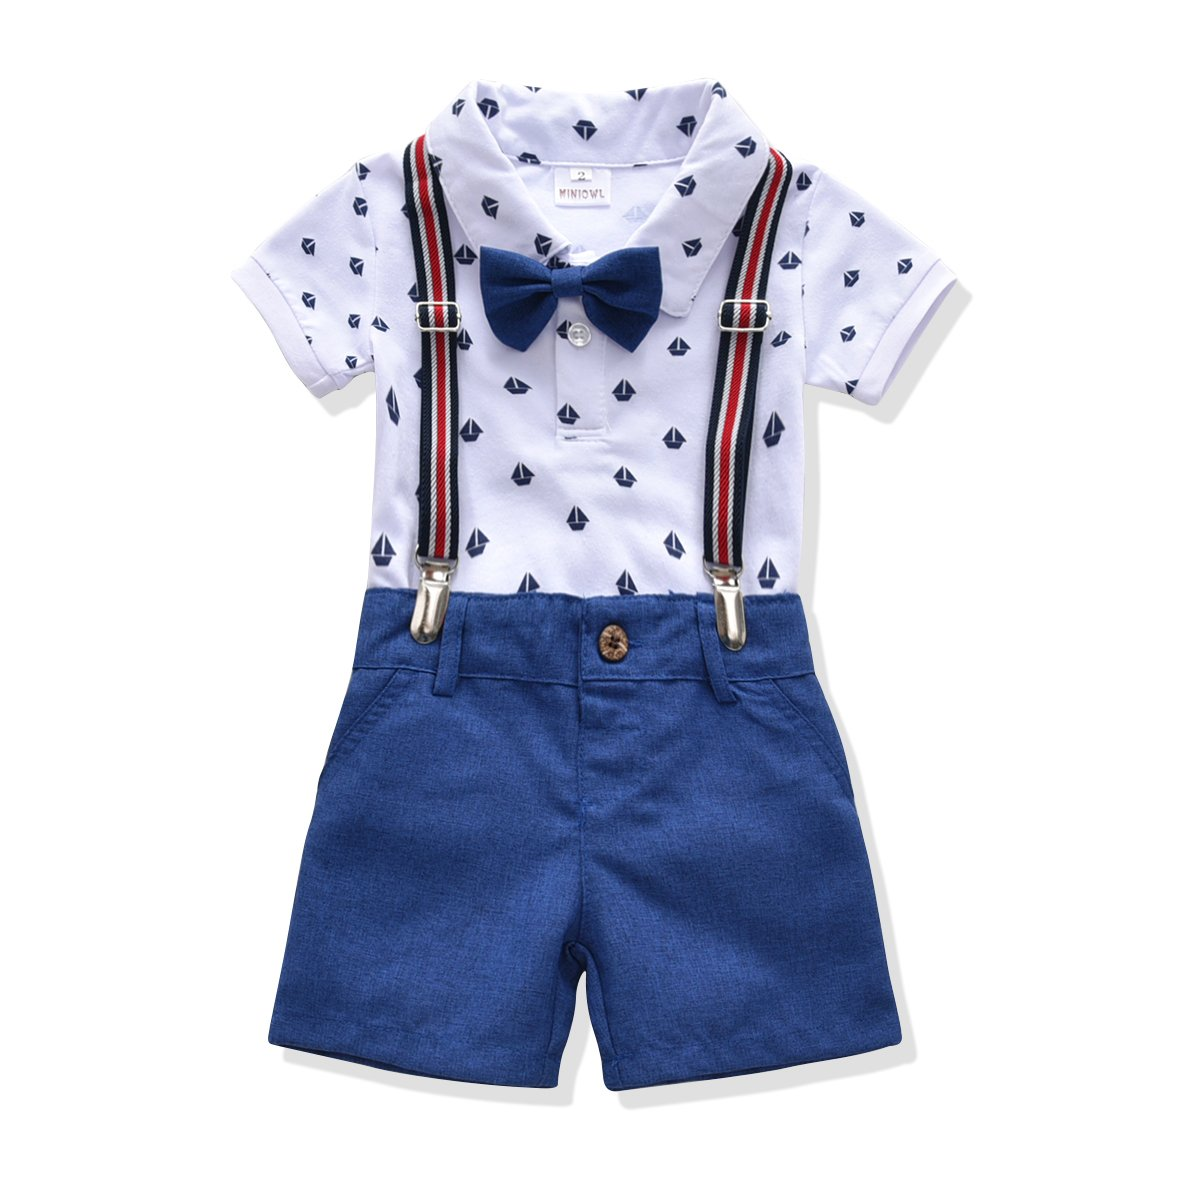 Toddler Boys Clothing Set Gentleman Outfit Bowtie Polo Shirt Bid Shorts Overalls (4T, White/Blue)